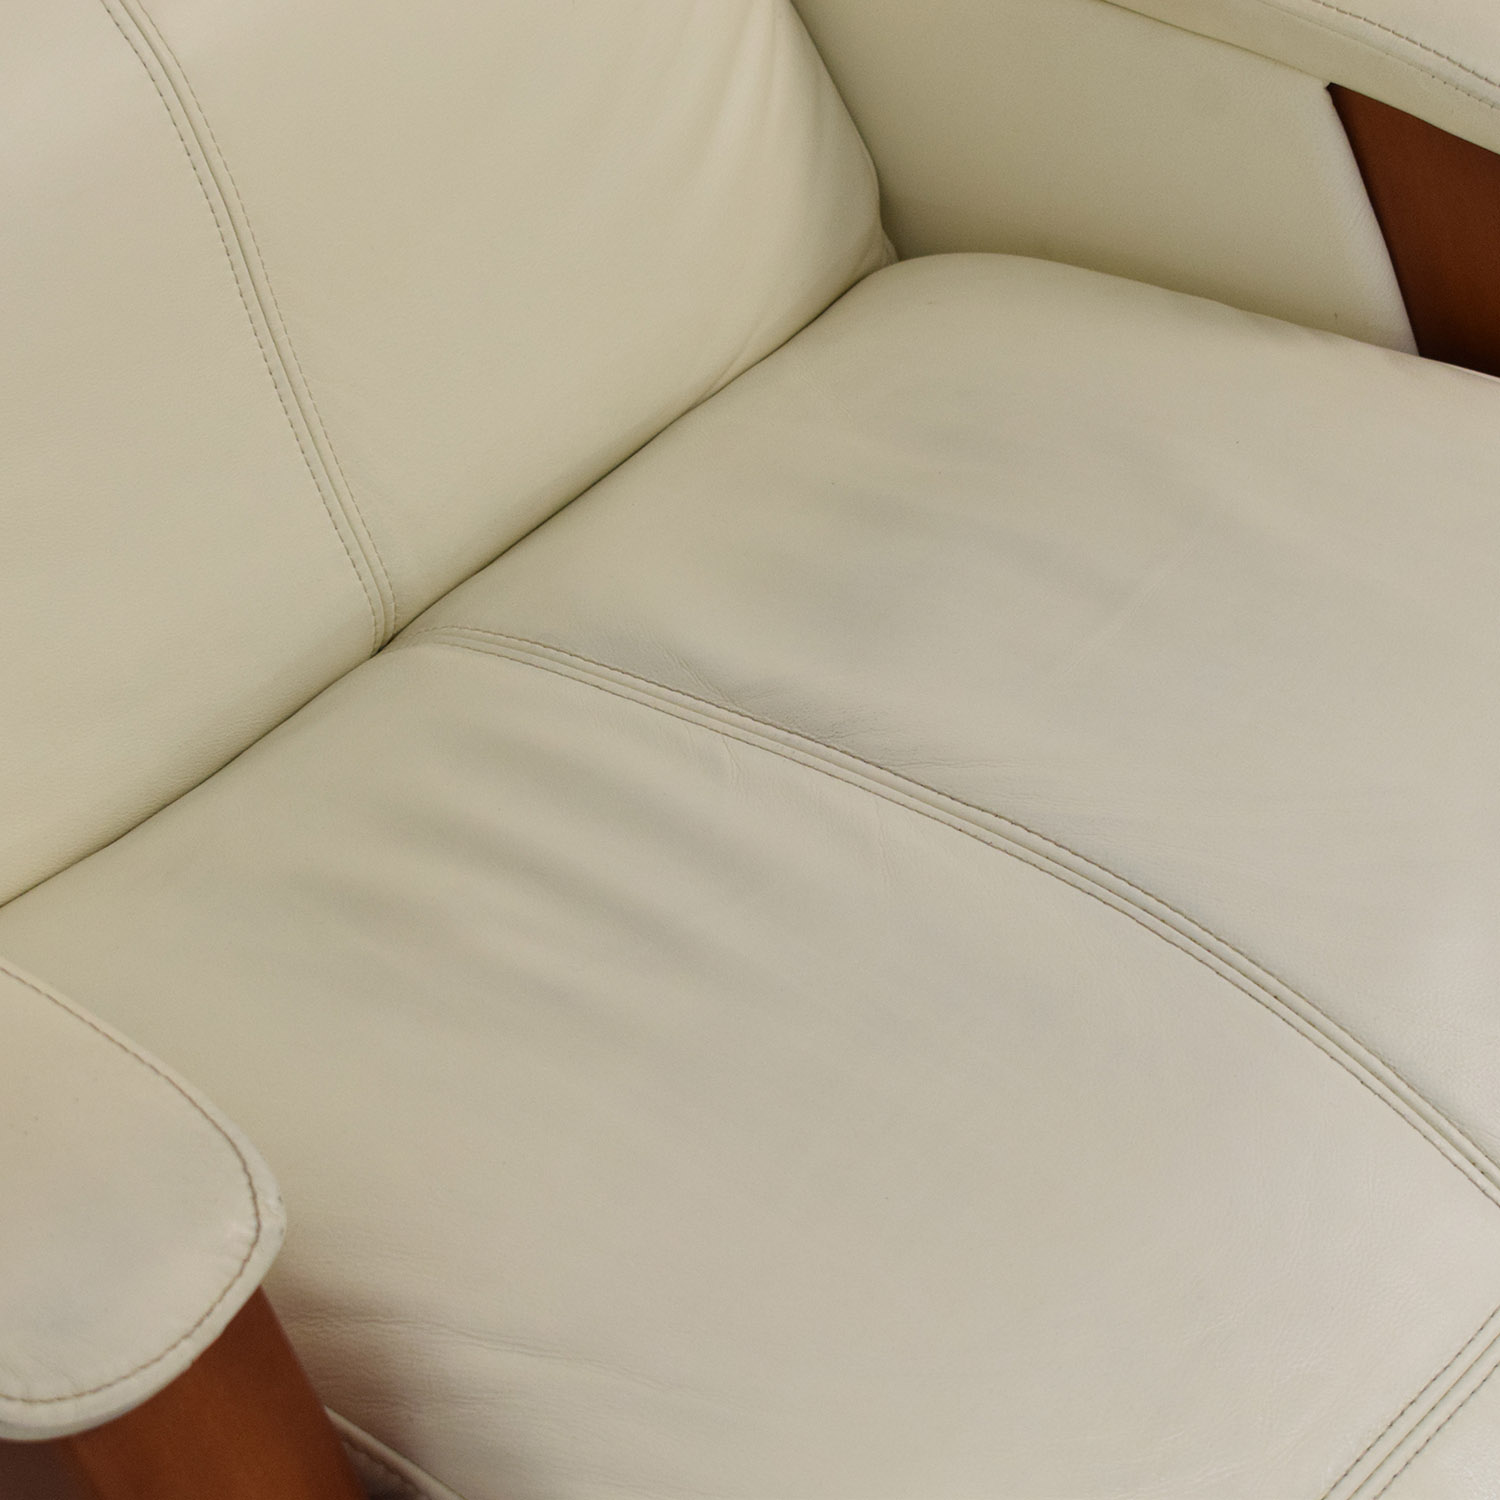 Relax The Back Relax The Back Electro Lounge Chair ma